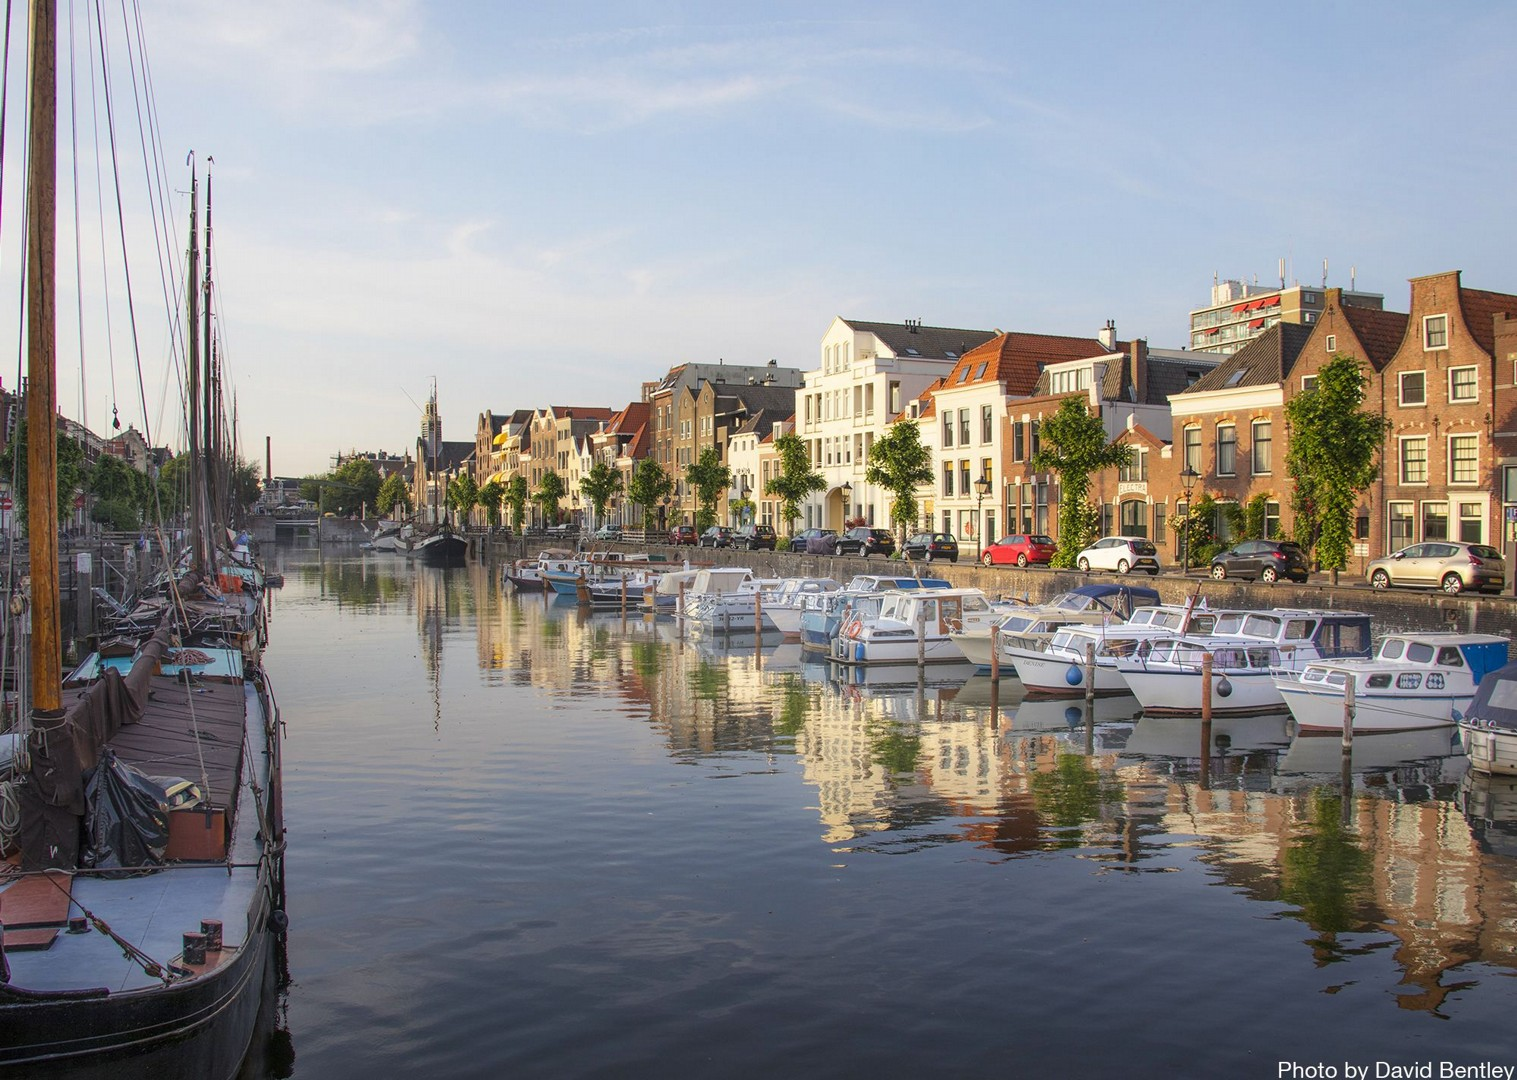 biking-trip-through-historic-towns.jpg - Holland - Windmills and Golden Beaches - Bike and Barge Holiday - Family Cycling